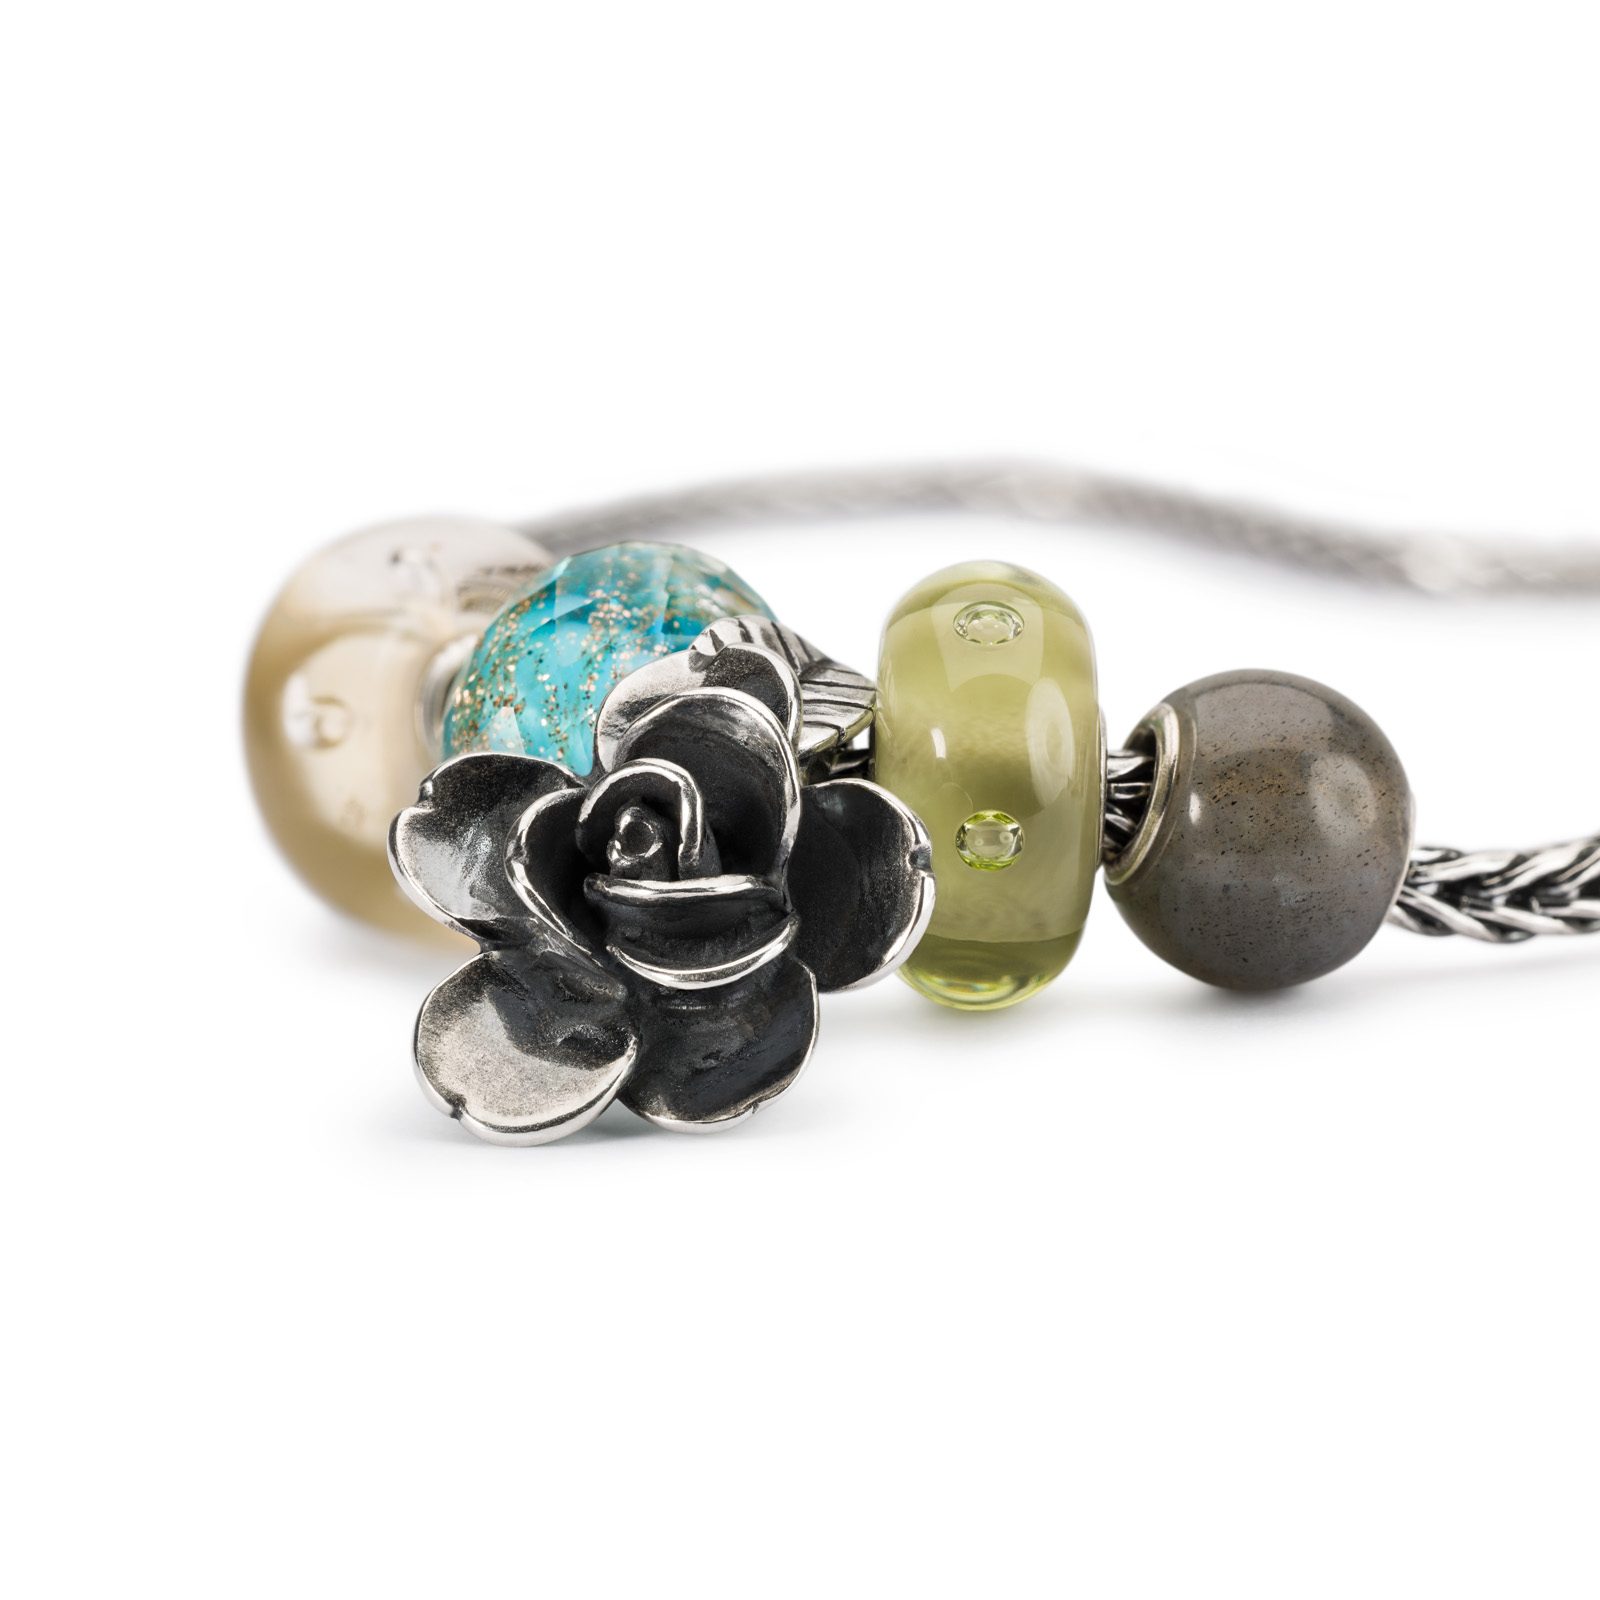 Trollbeads - New Wisdom Necklace Close Up